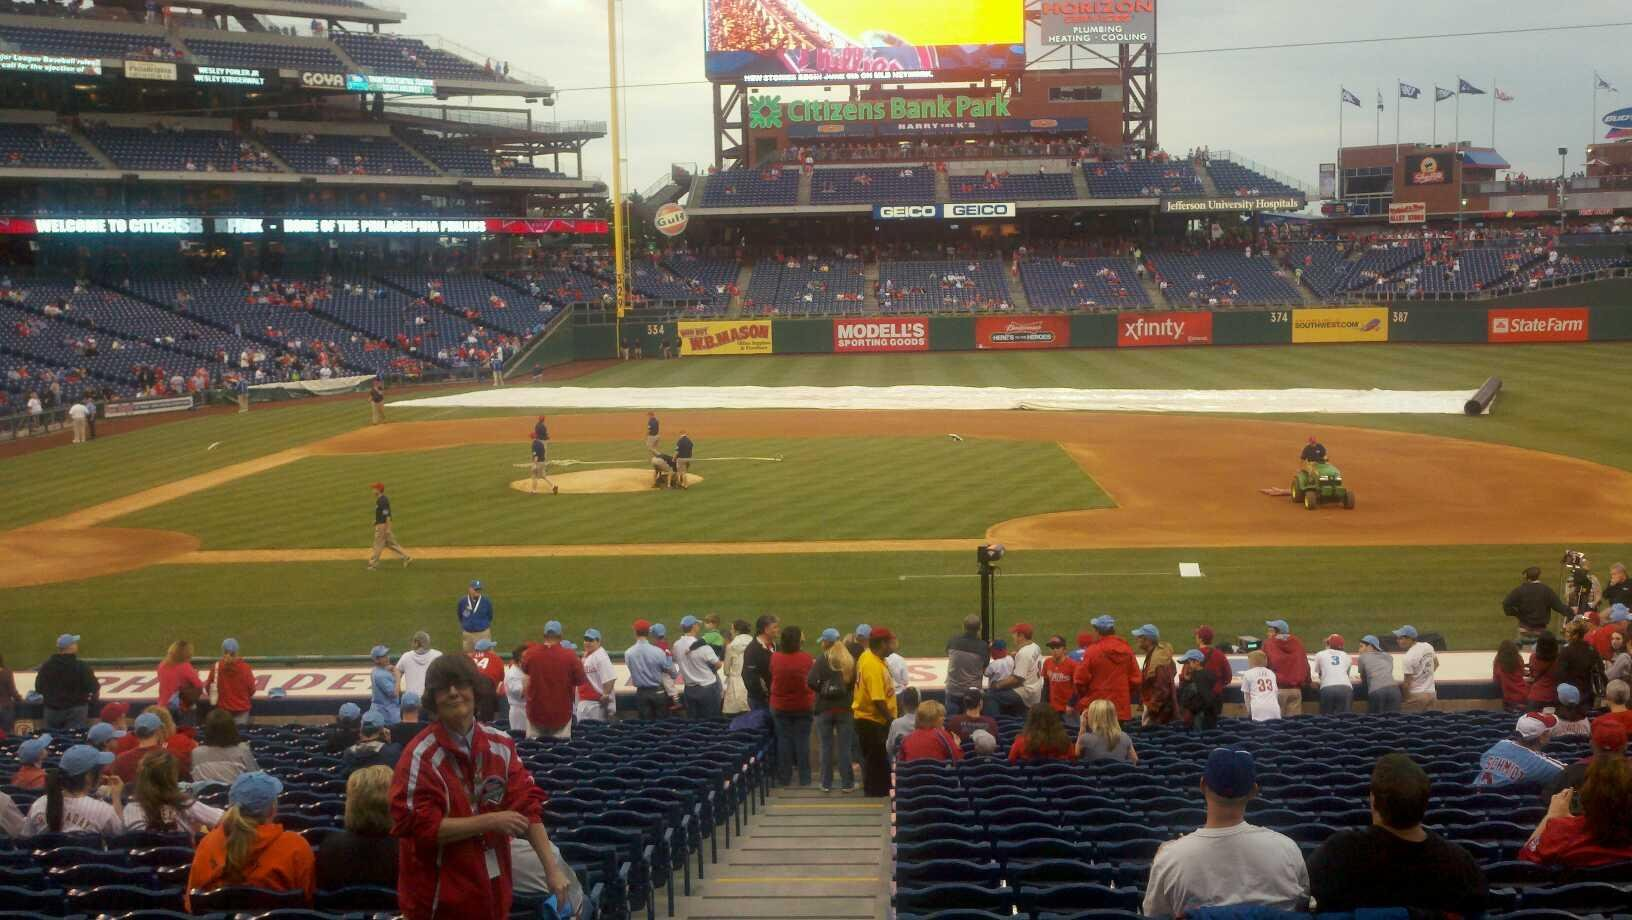 Citizens Bank Park Section 116 Row 26 Seat 18